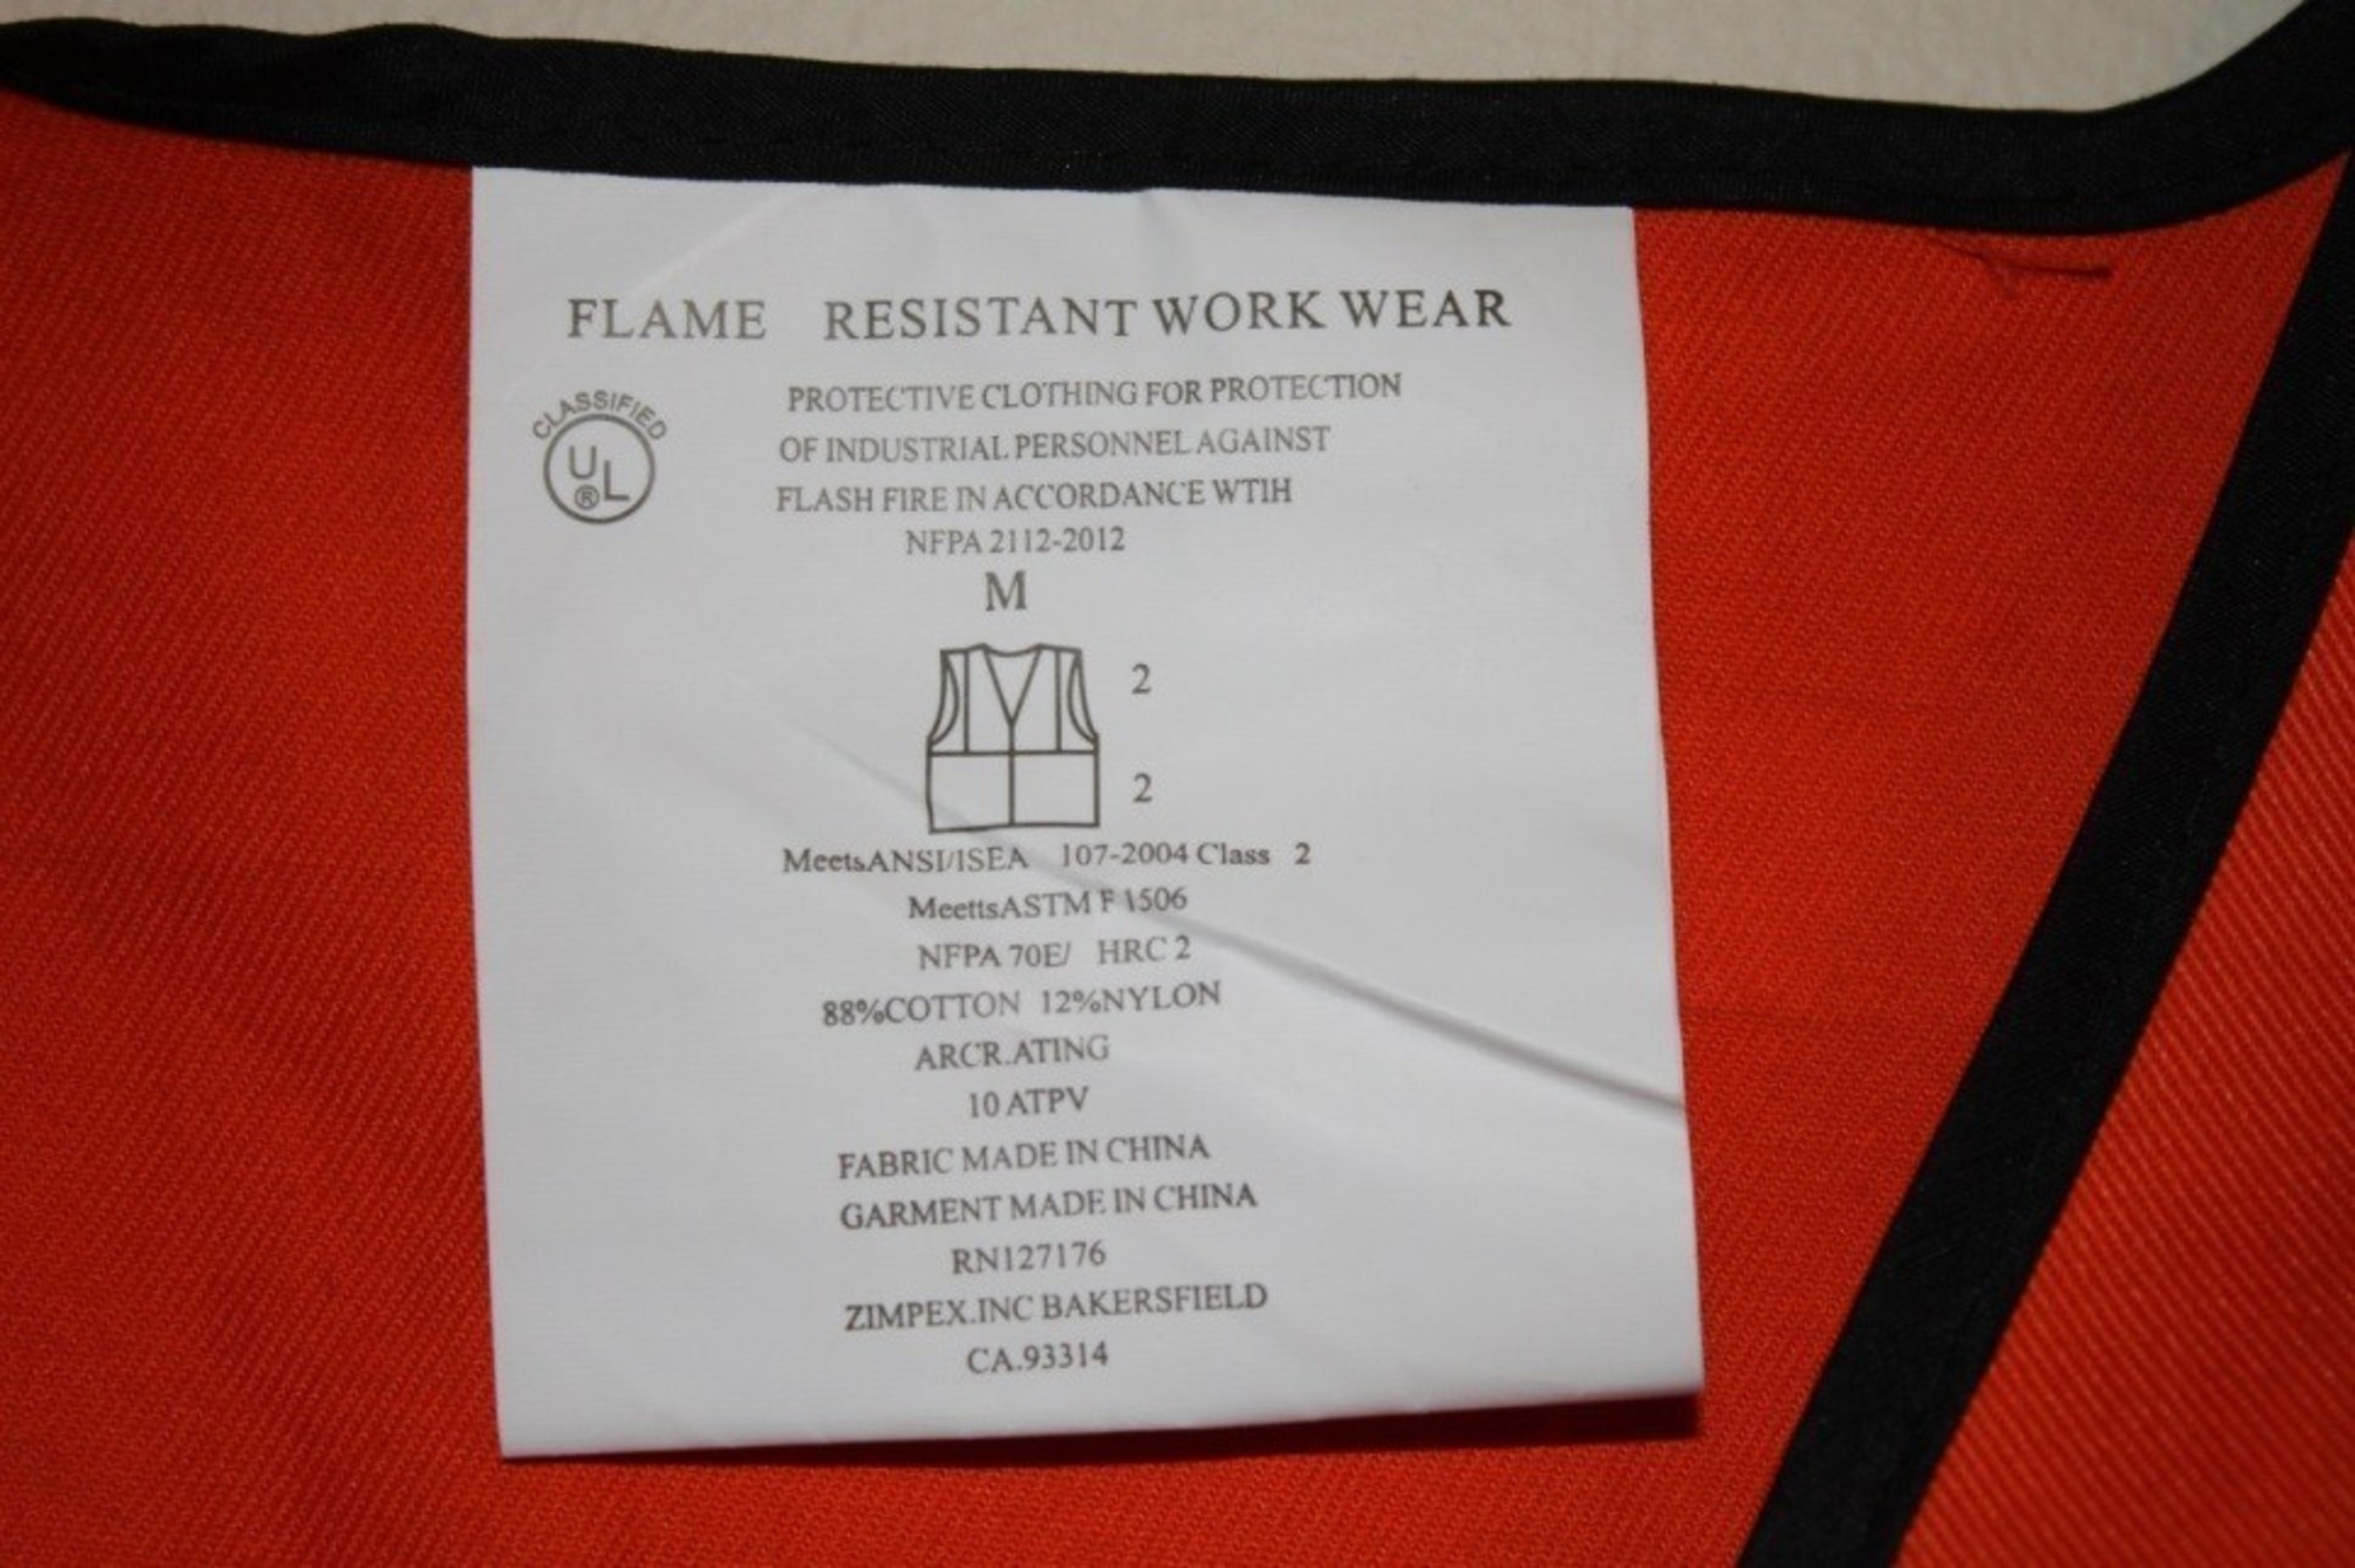 Picture of counterfeit UL label on collar of vest: